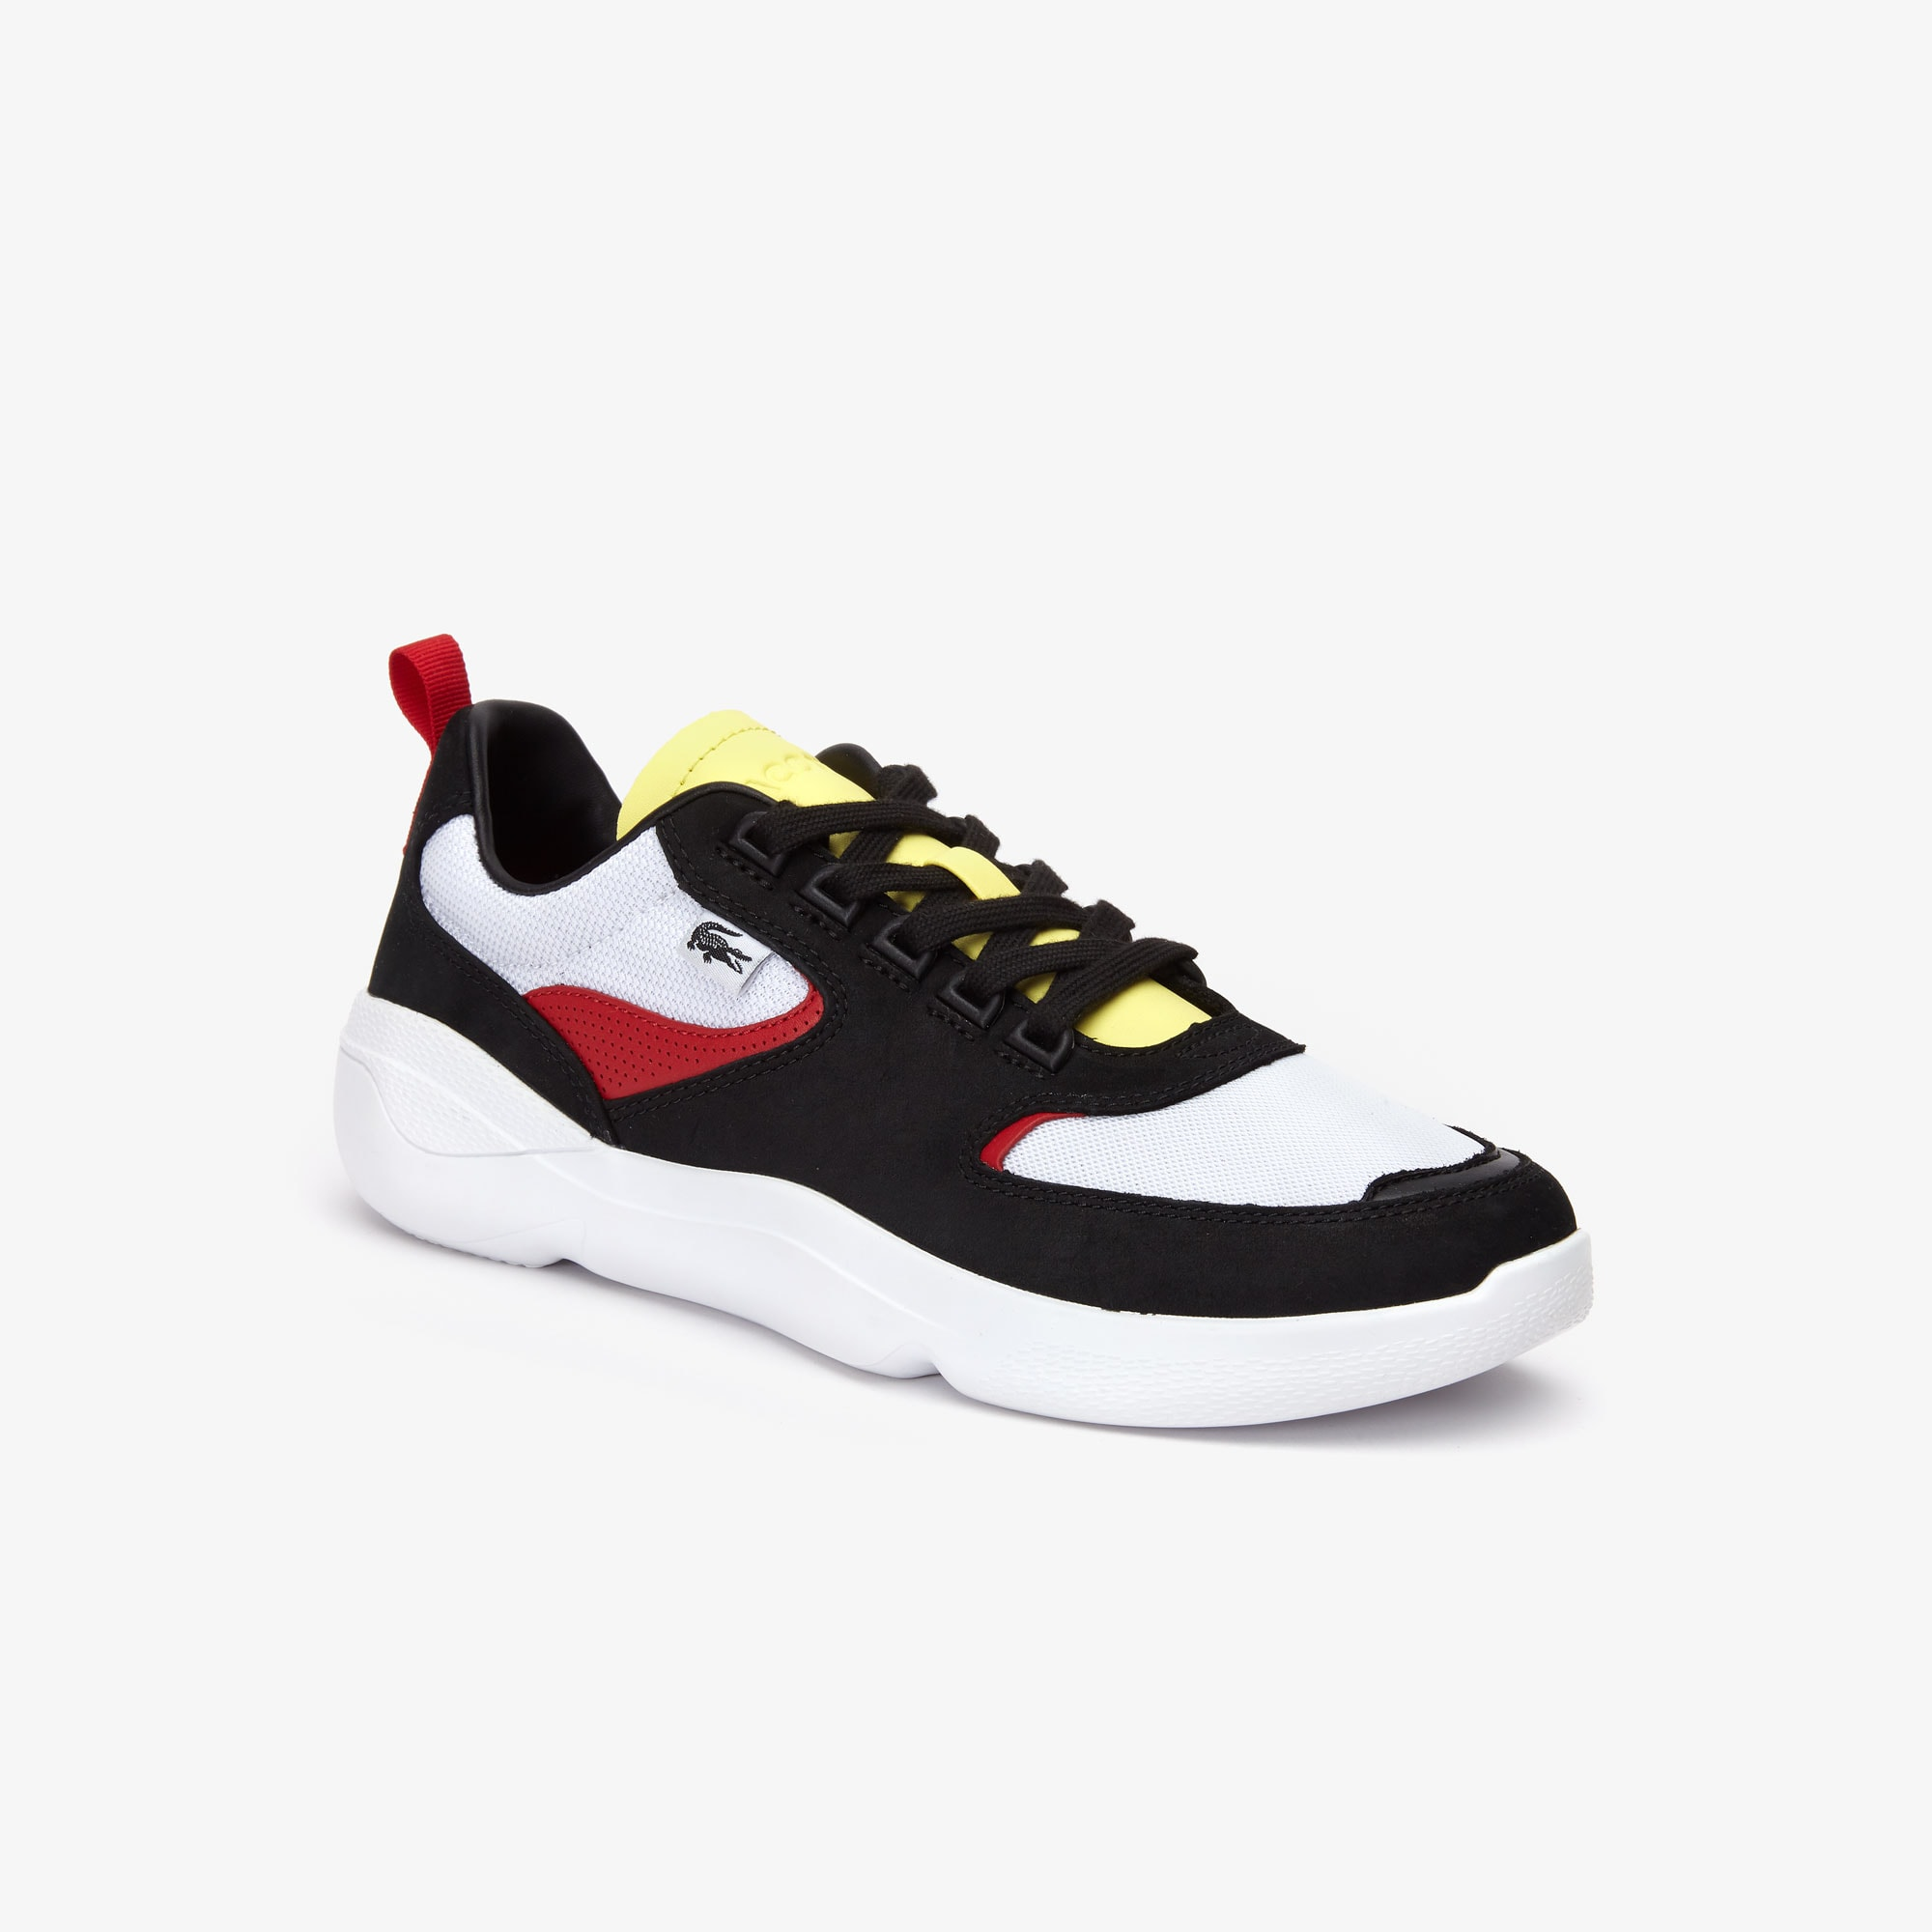 Lacoste Sneakers Men's Wildcard Leather-Paneled Sneakers